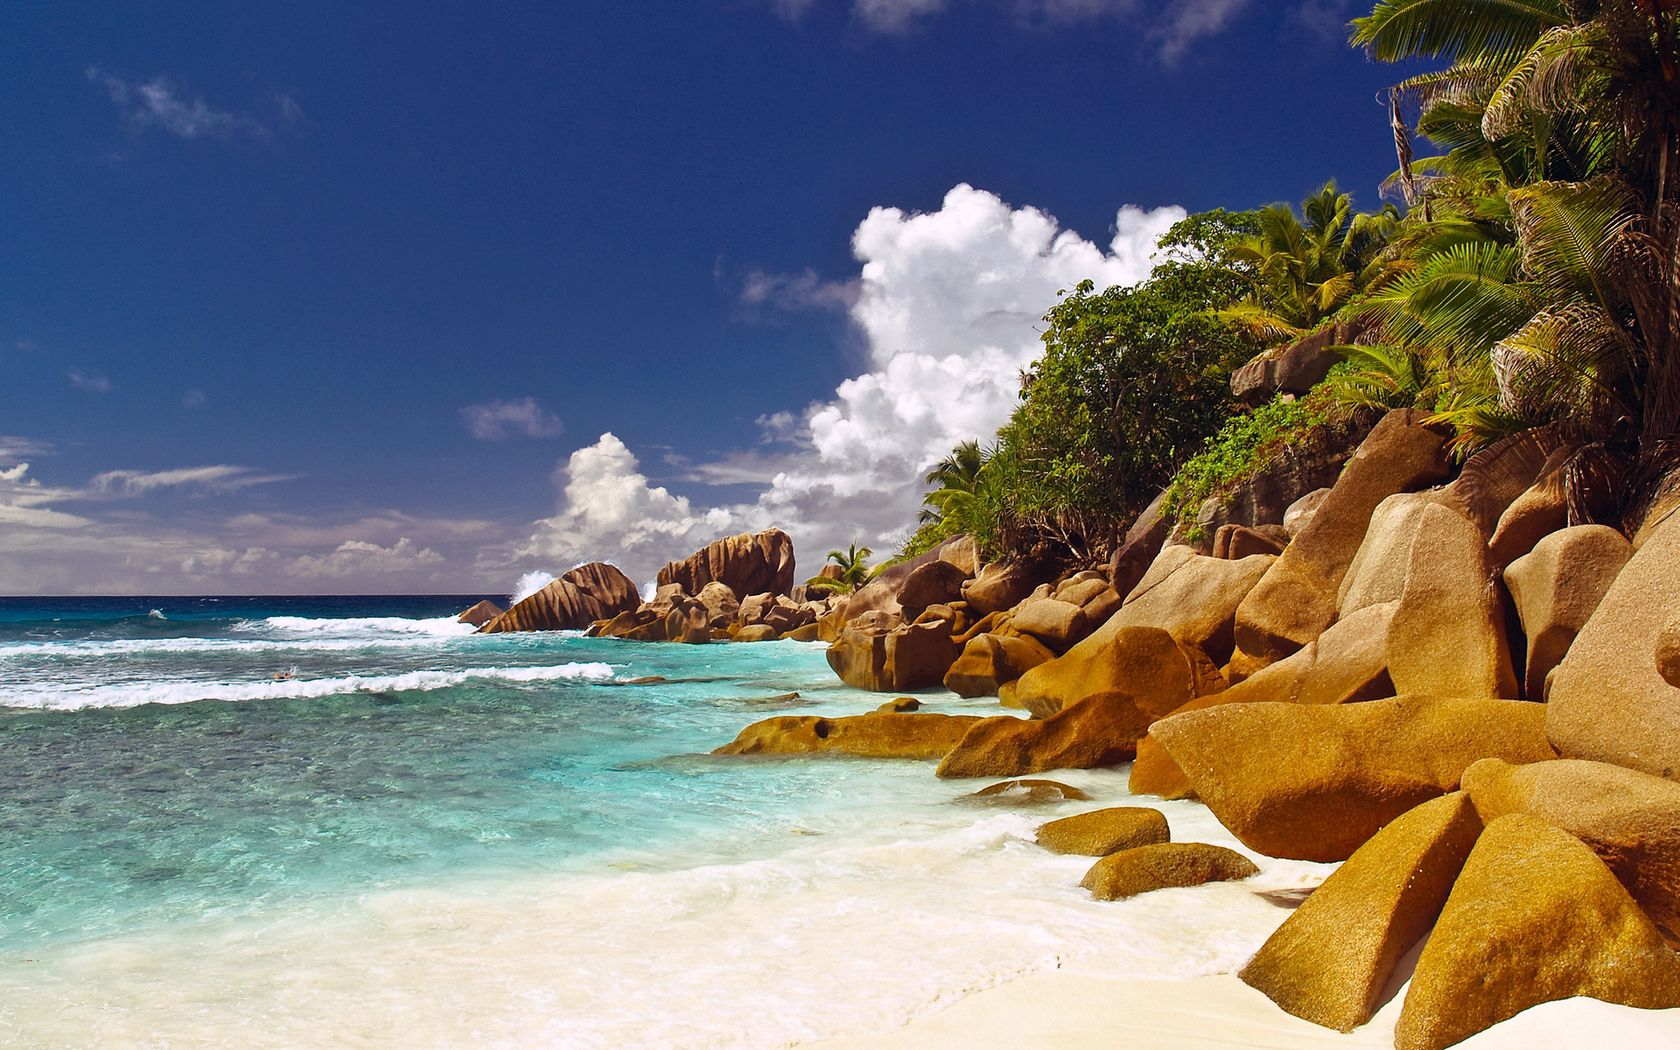 86647 download wallpaper Nature, Stones, Boulders, Shore, Bank, Beach, Blue Water, Tropics, Palms screensavers and pictures for free